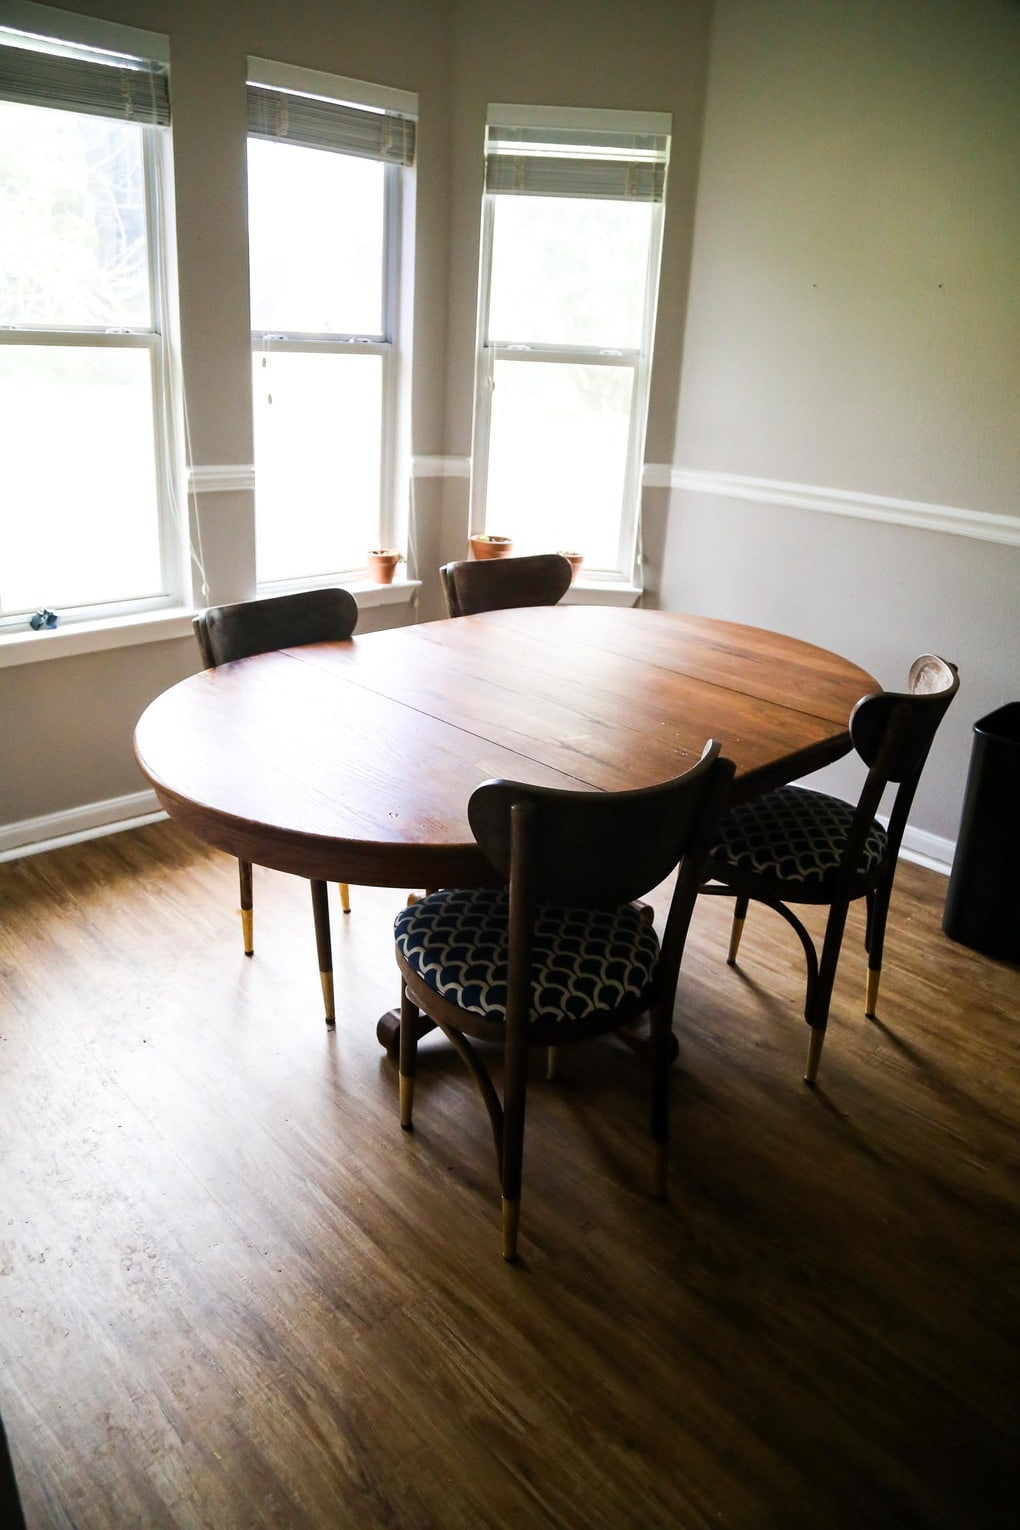 Dining table before makeover